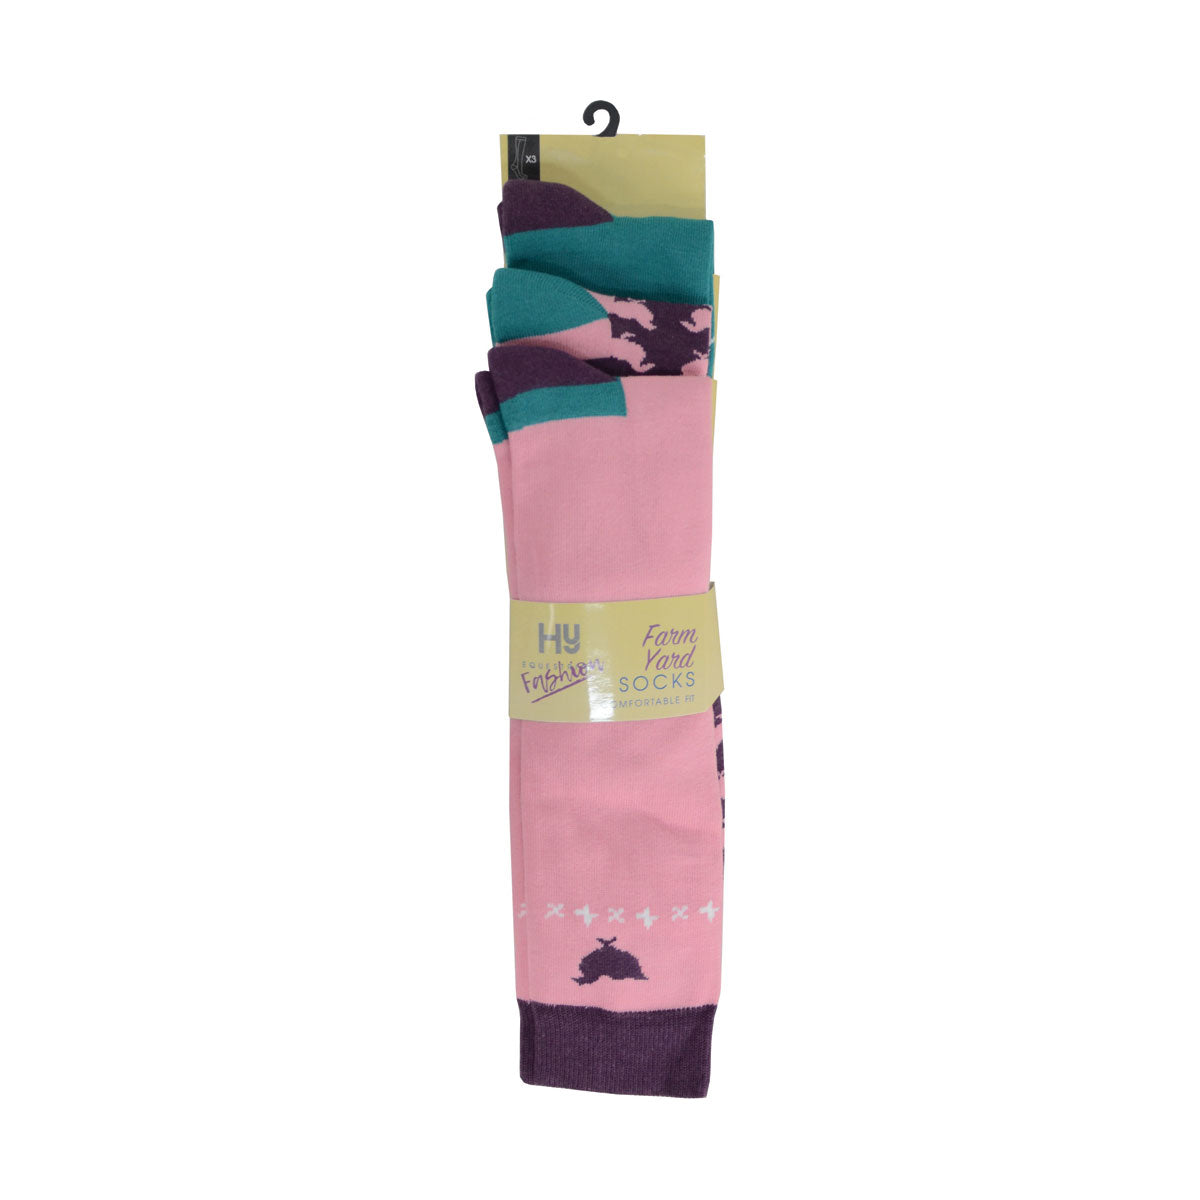 HyFASHION Farm Yard Socks